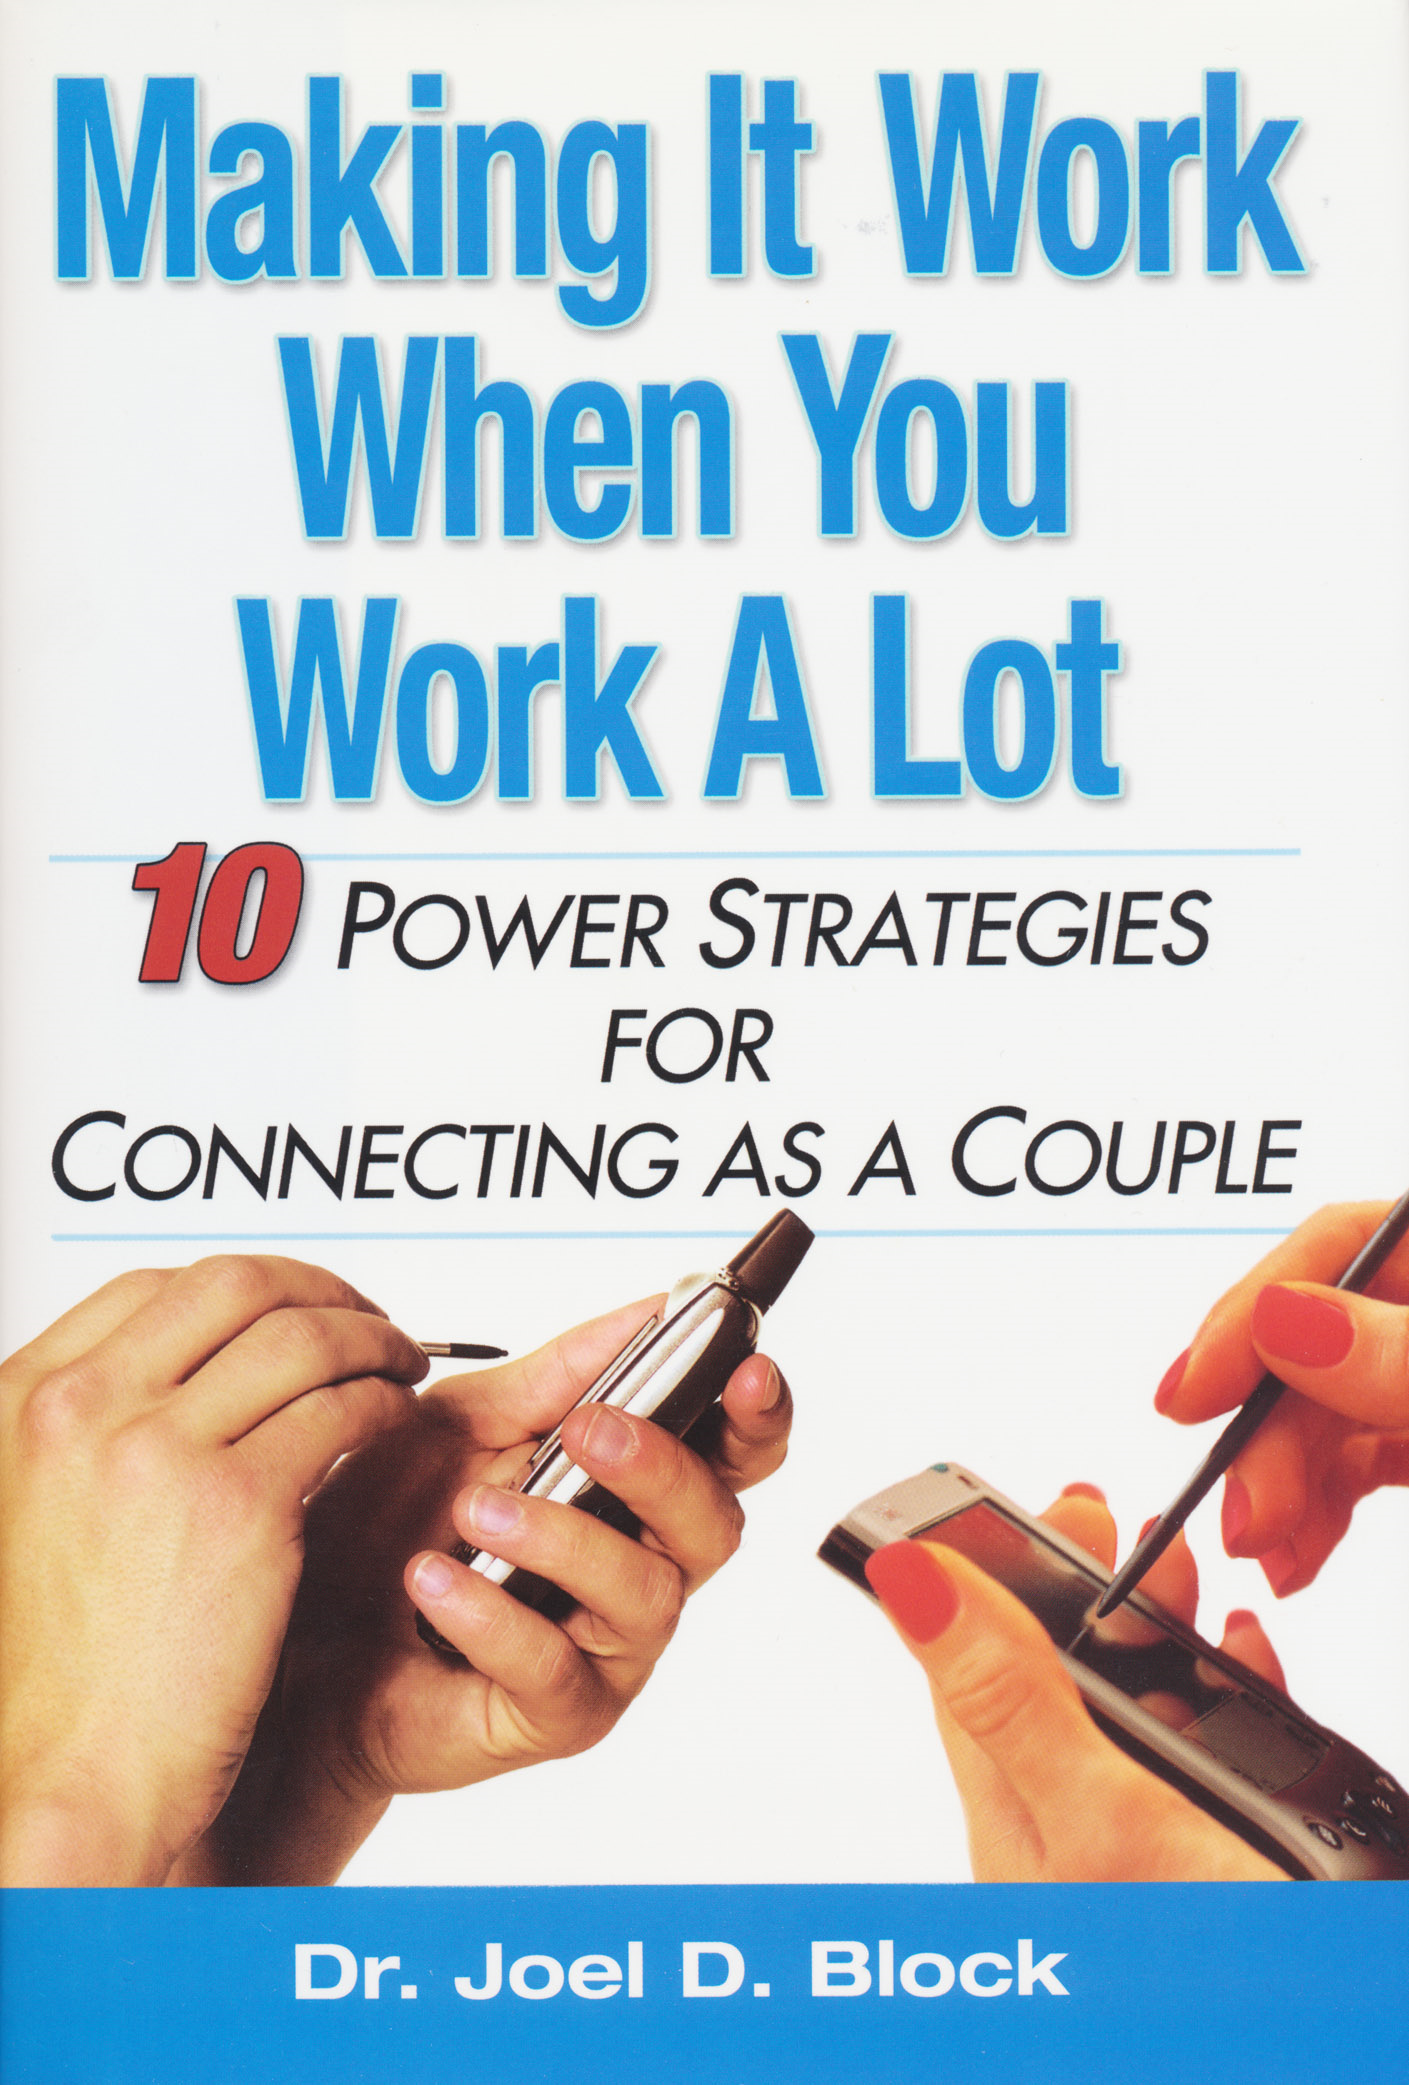 Making It Work When You Work A Lot: 10 Power Strtegies For Connecting As A Couple